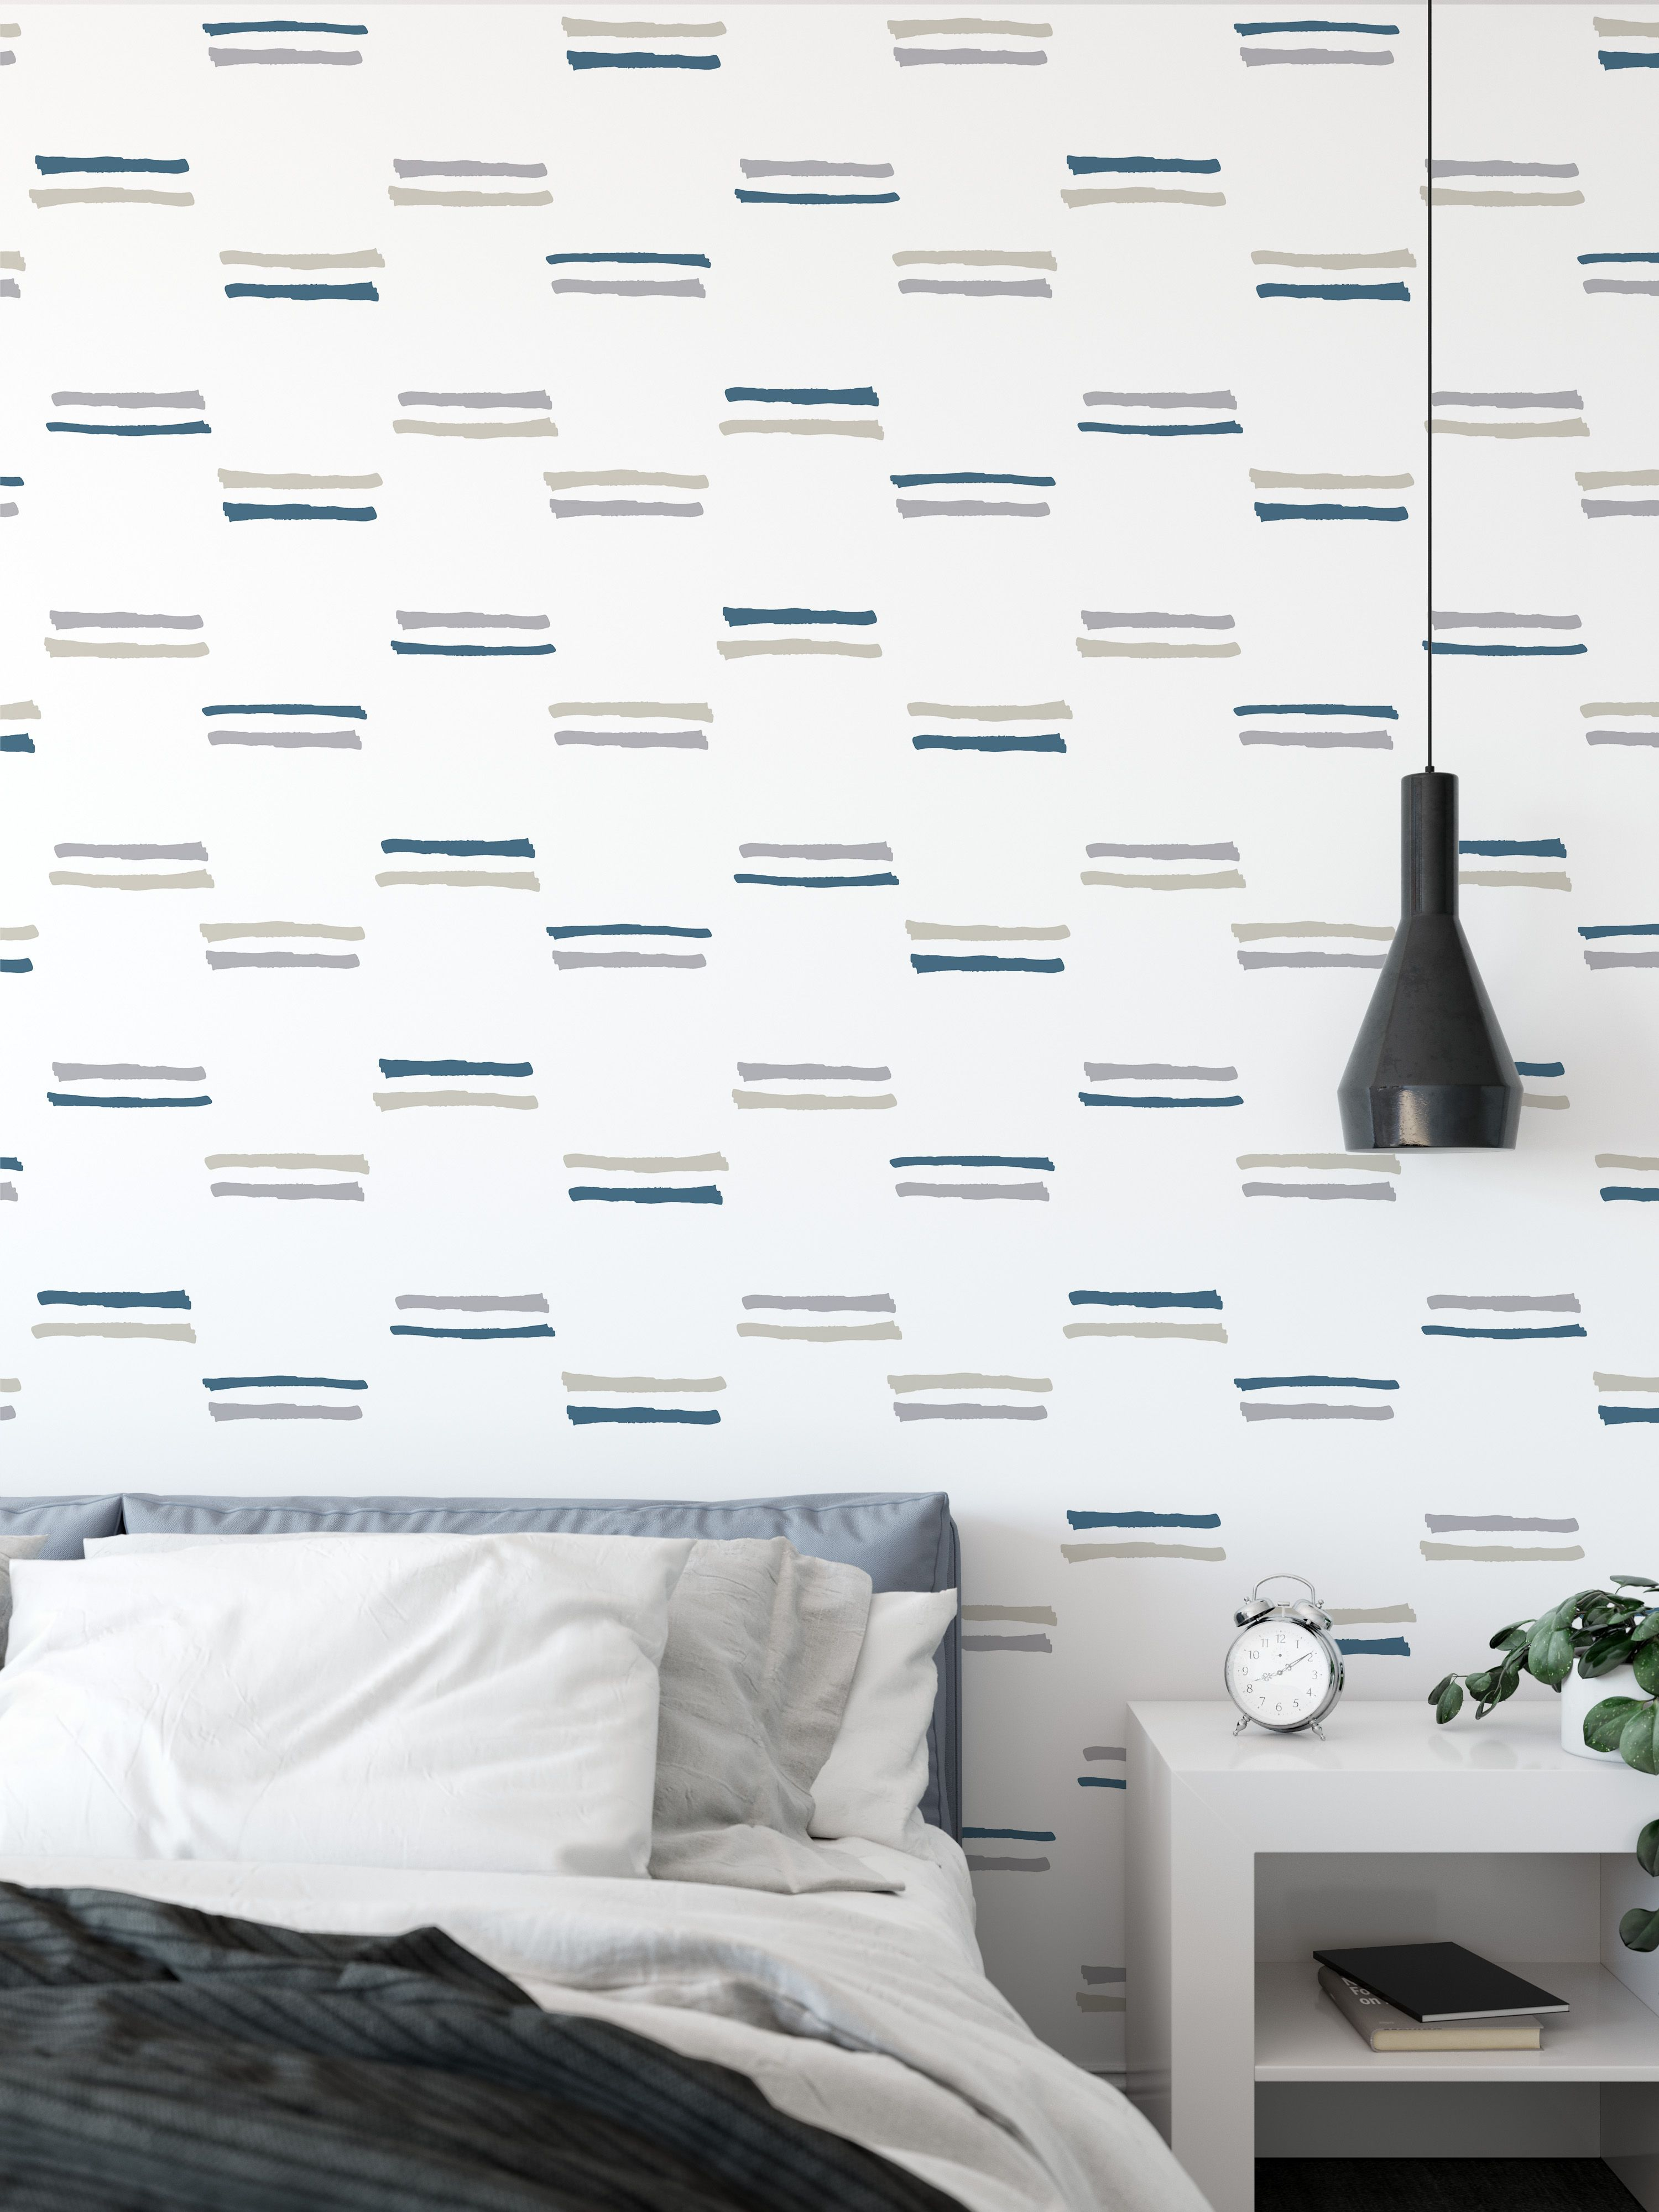 Pacific Paint Lines Paint Line How To Install Wallpaper Lines Wallpaper